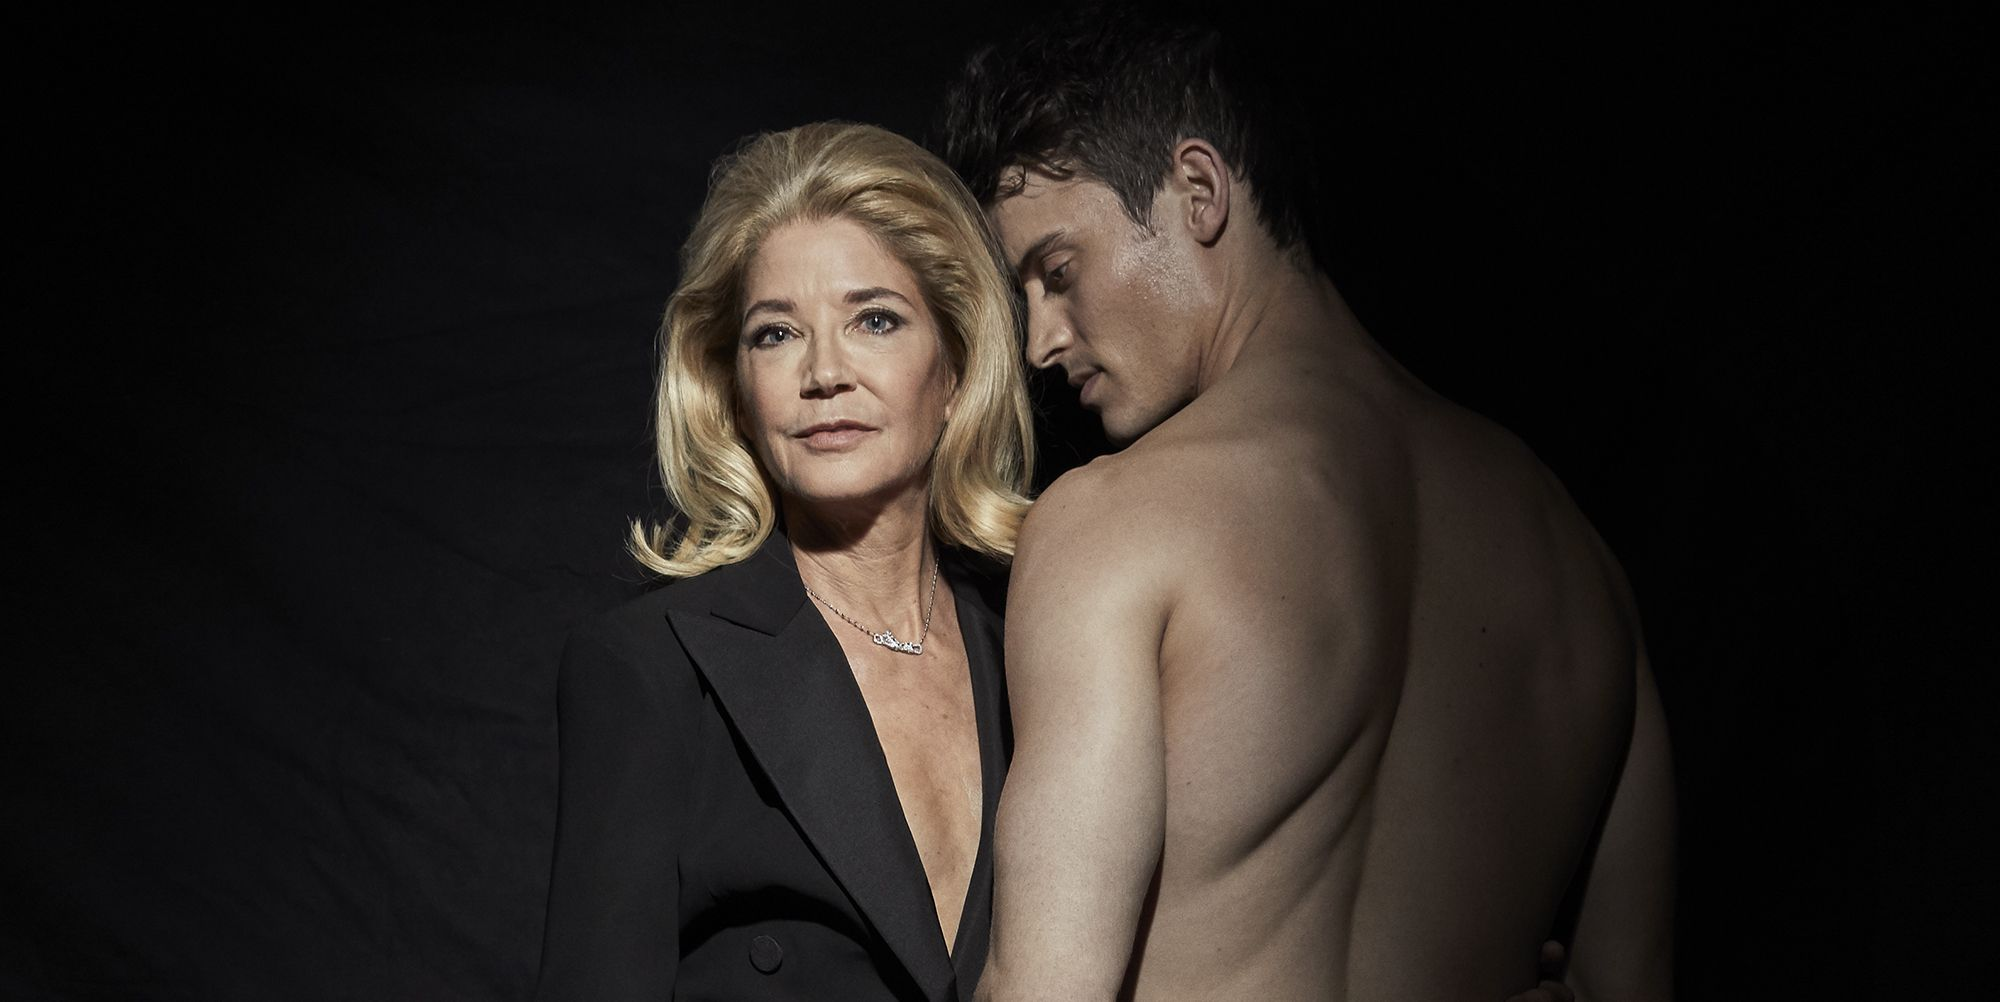 Candace Bushnell on Sex and the Much, Much Younger Man